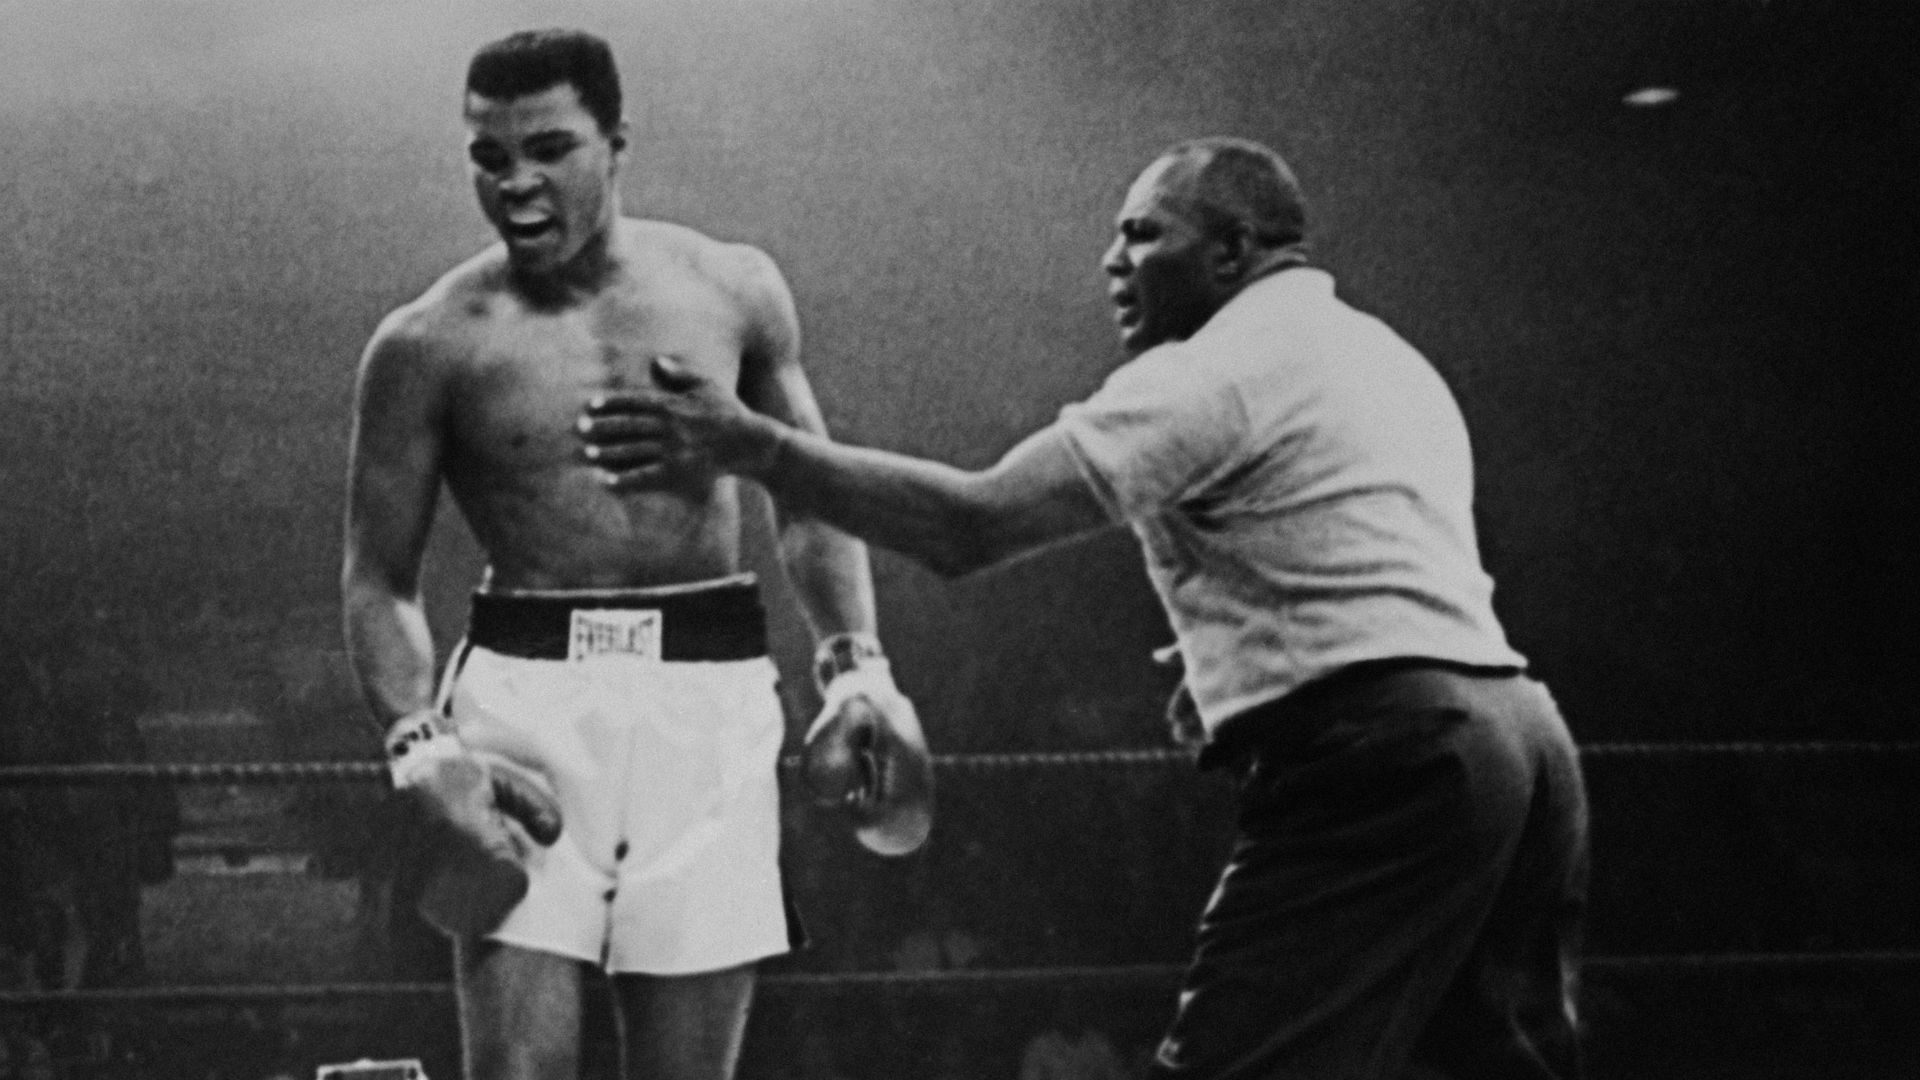 On this day in sport: Ali wins controversial Liston rematch, Liverpool pull off Istanbul miracle